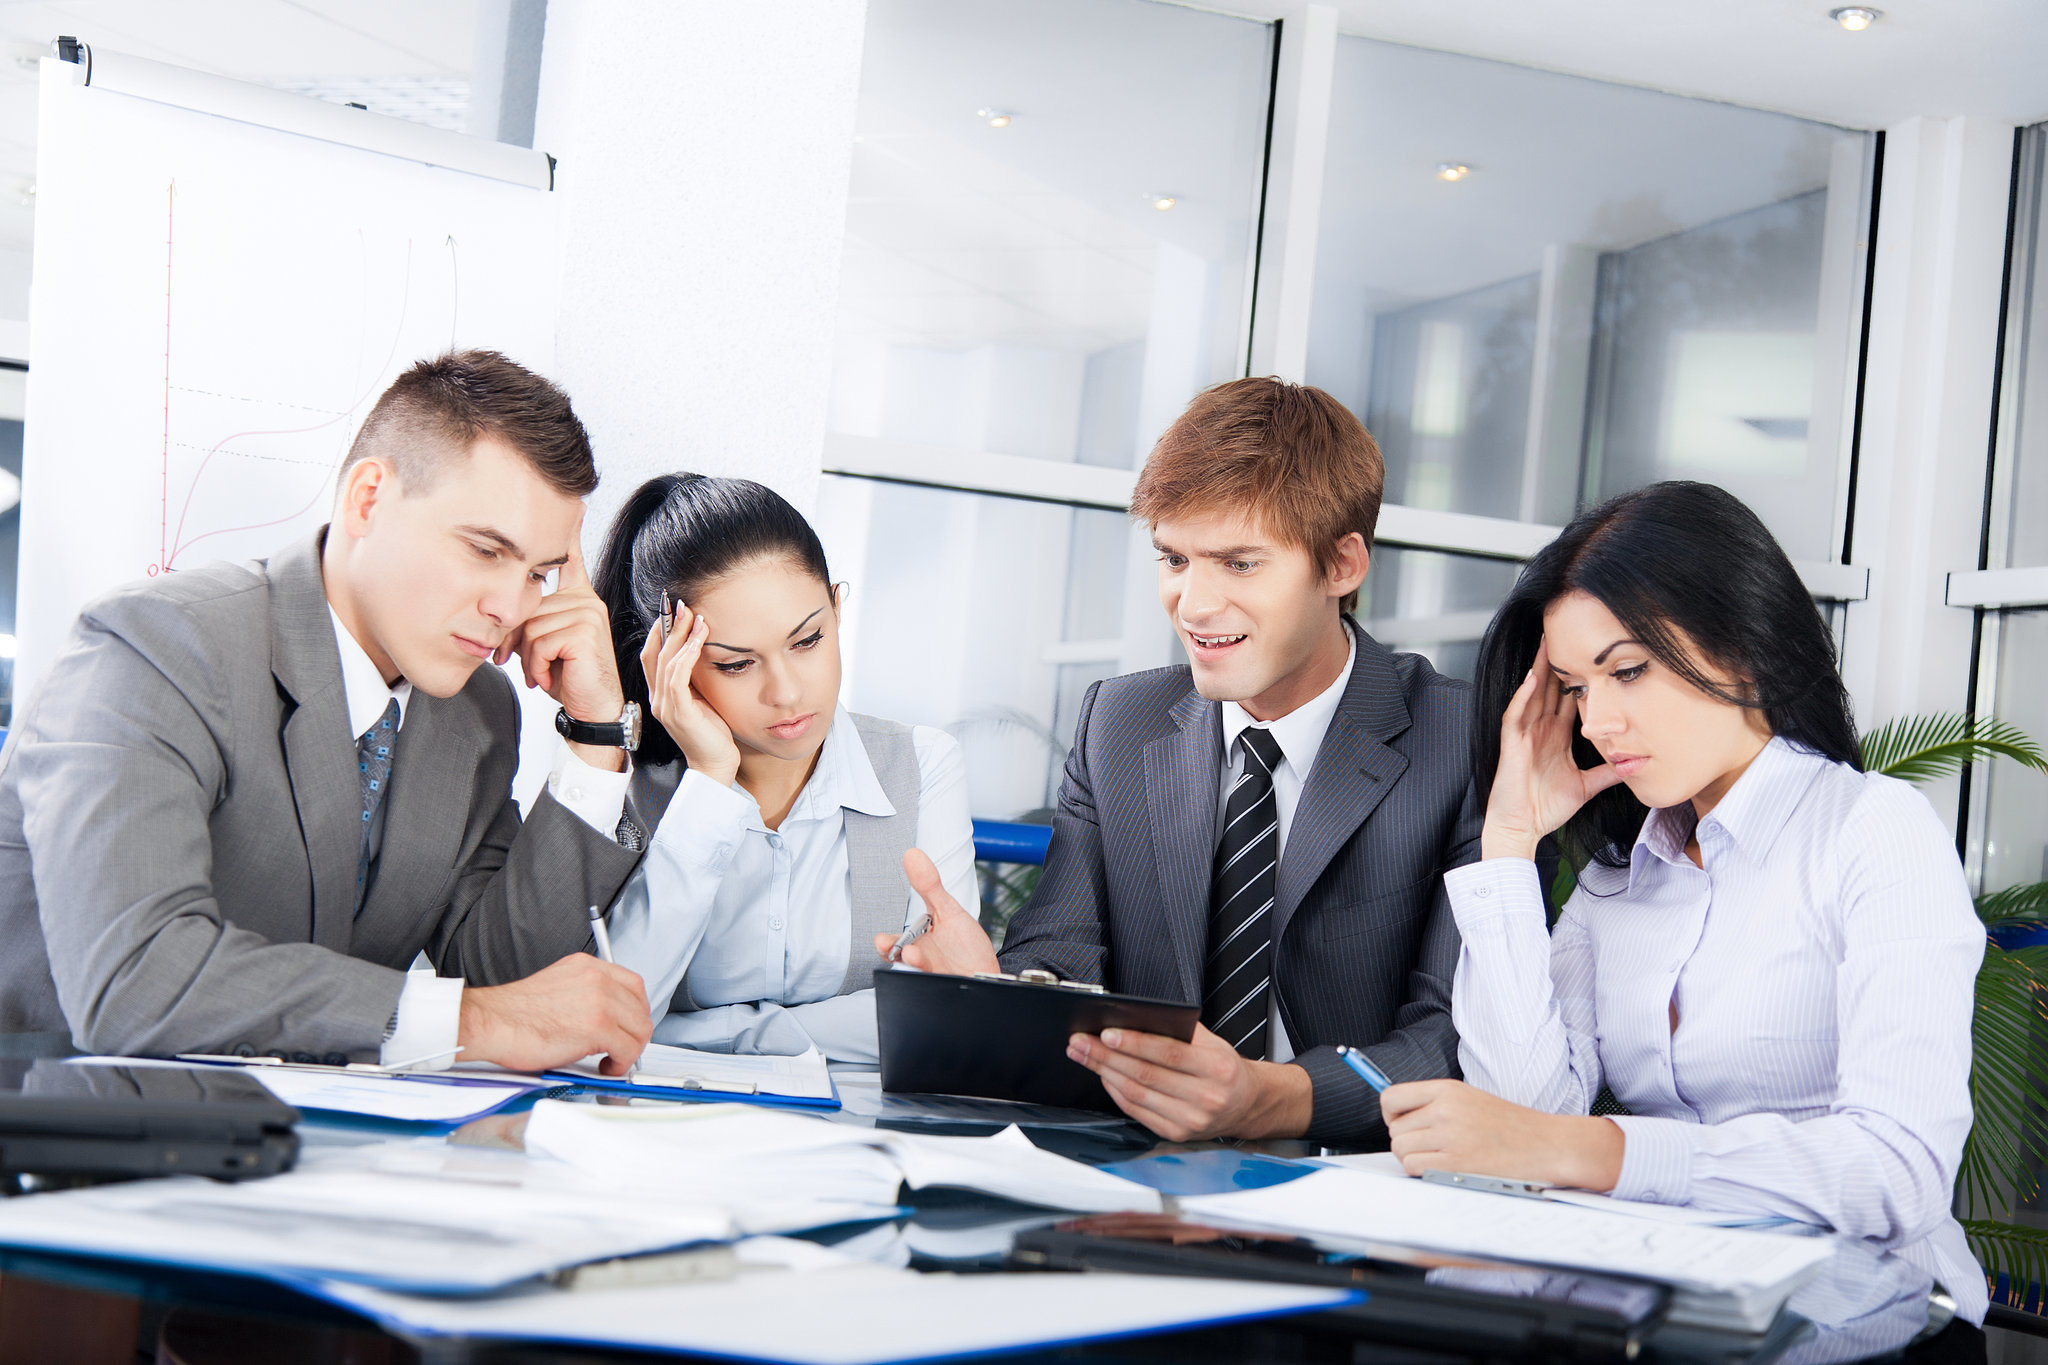 essay on coworkers conflicts When an individual has little or no conflicts with their peers and co-workers dissertation or essay on conflict resolution from our professional custom.